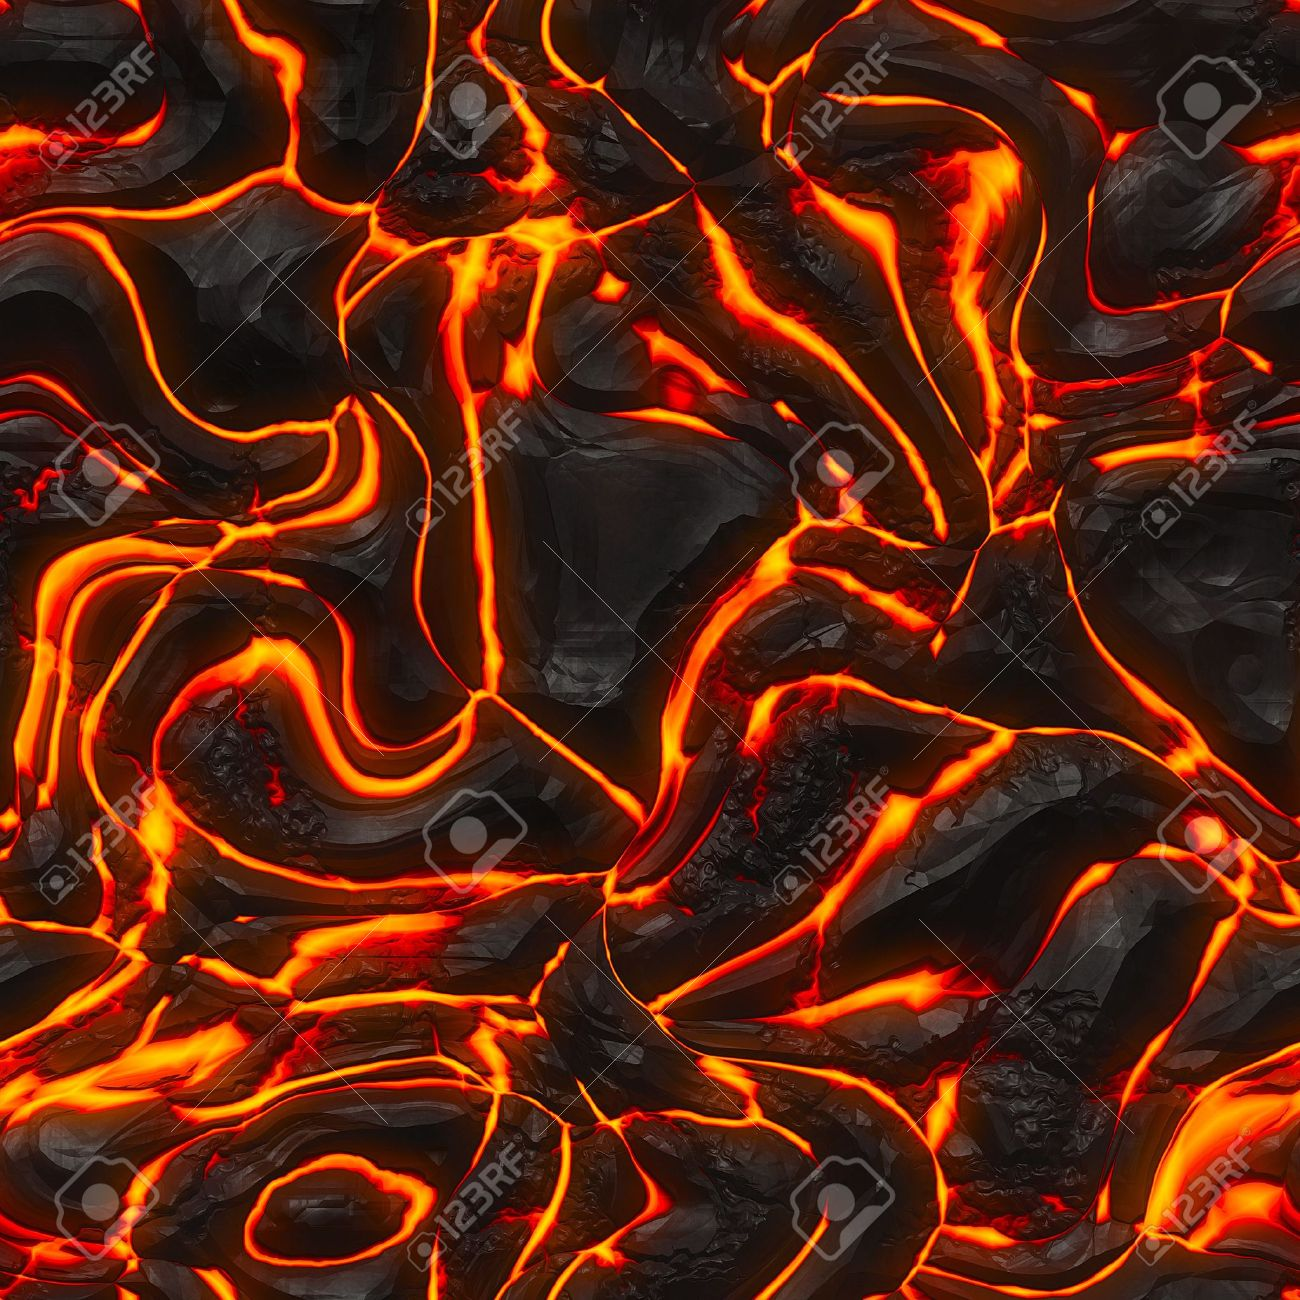 Magma clipart #5, Download drawings